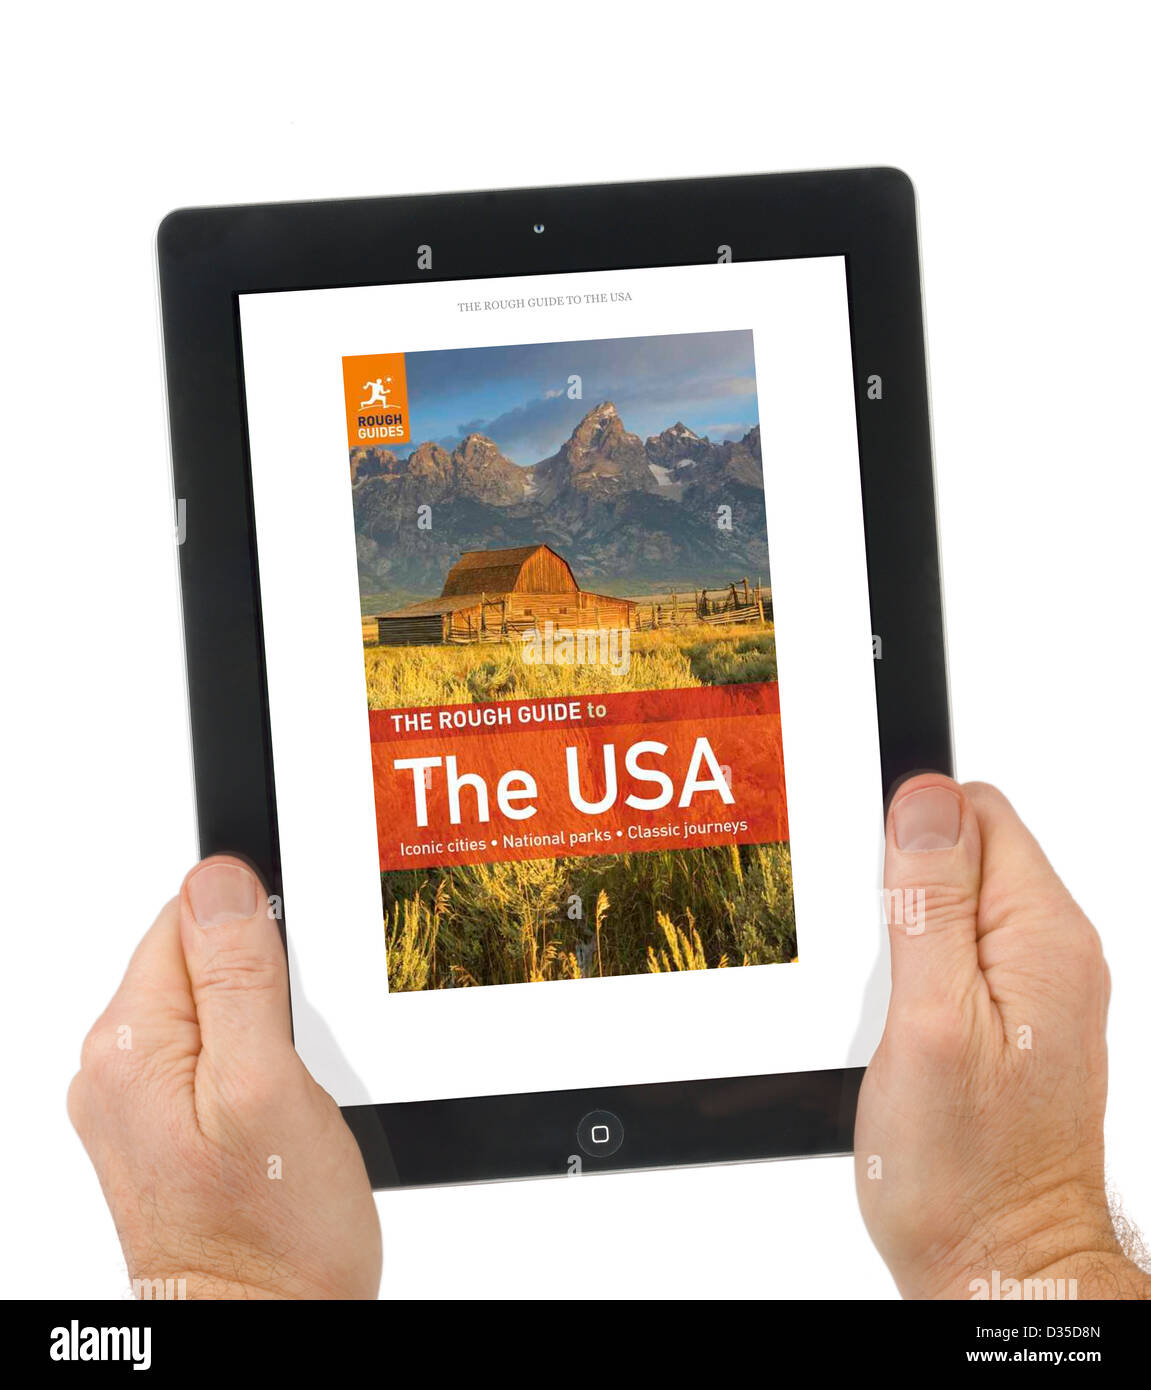 La lecture d'un guide approximatif avec carnet de voyage l'application Kindle sur un Apple iPad retina 4ème Photo Stock